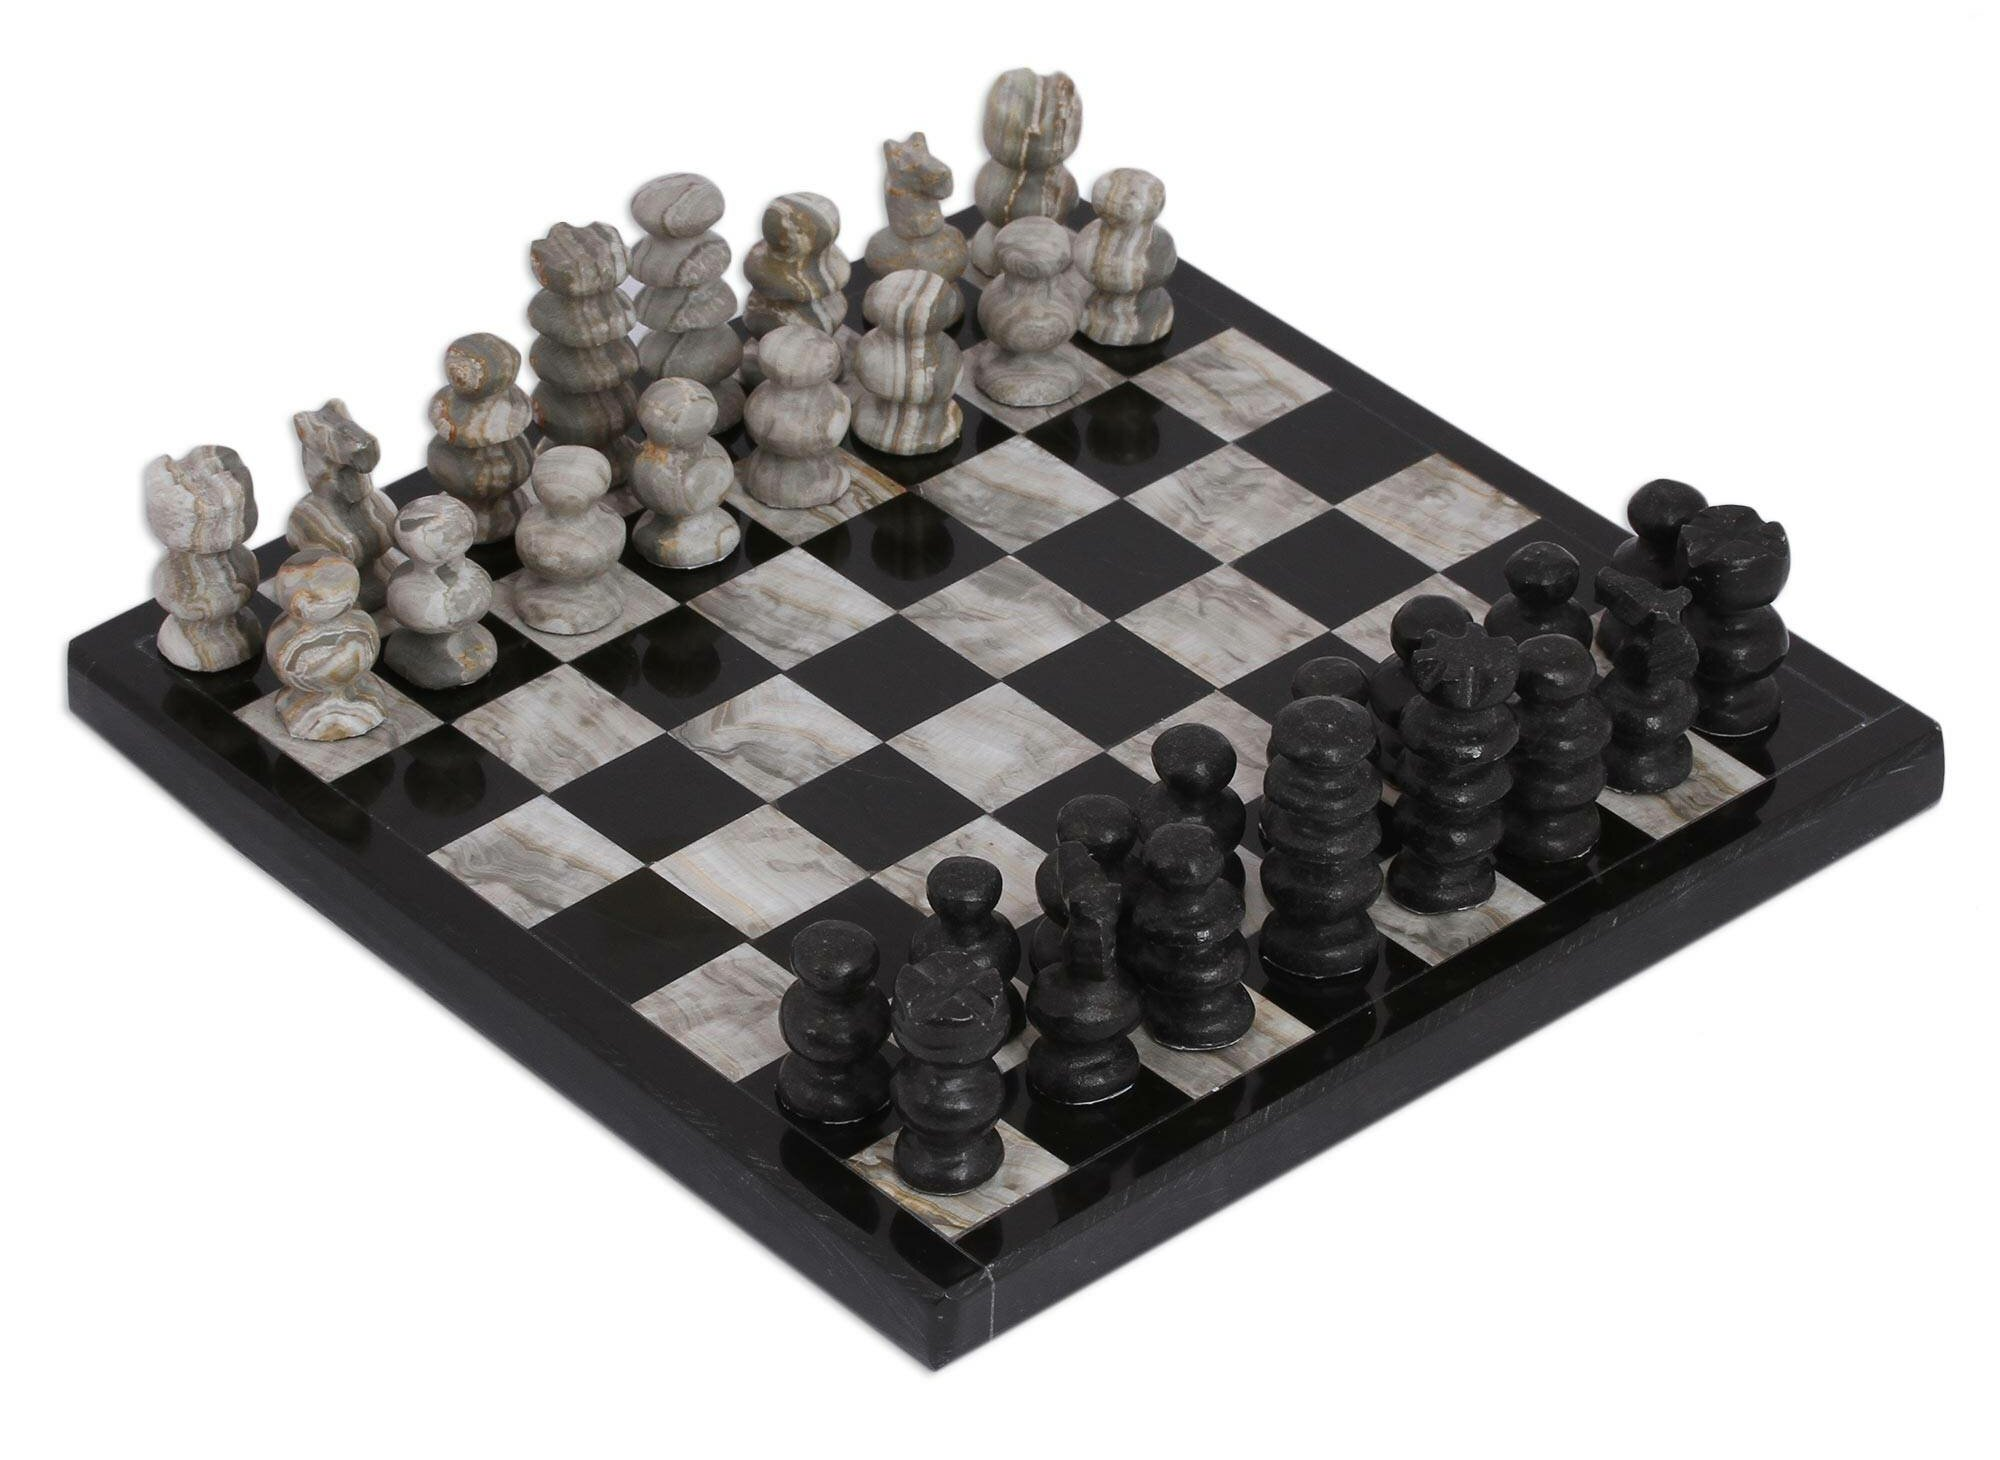 Store Indya Handmade Wooden Decorative Travel Table Top Games Chess Board Decorative Accessories Home Accessories